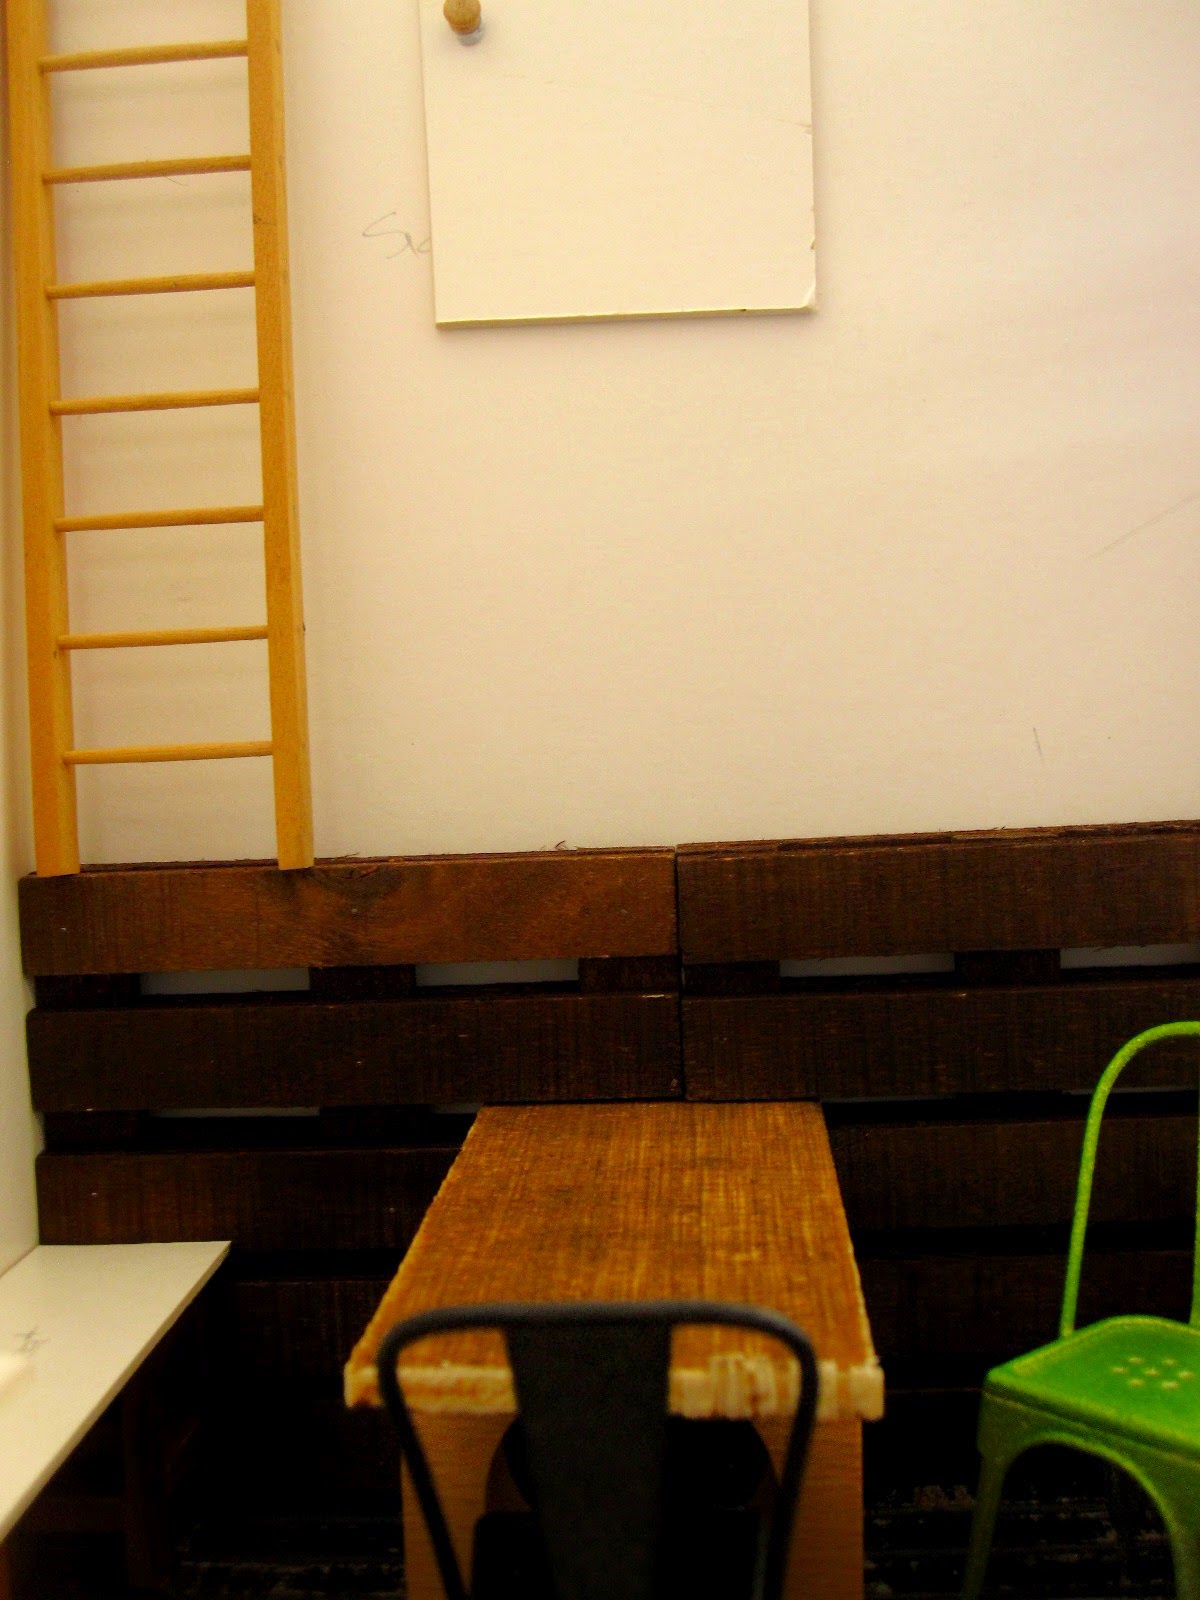 Modern dolls' house miniature half-built cafe, showing a wall with a cupboard near the ceiling and a ladder leading to it.